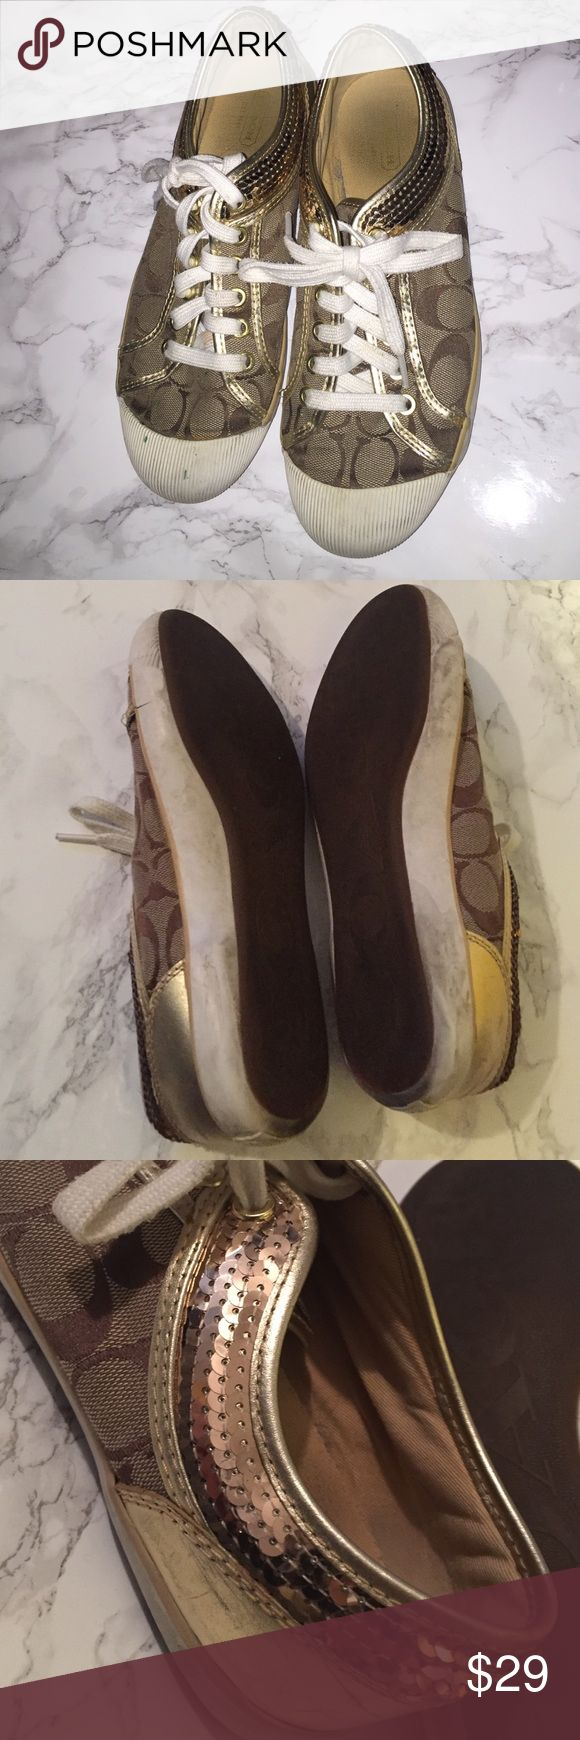 Coach Tennis Shoes - Brown & Gold sequin! - size 8 Coach Tennis Shoes - Brown & Gold sequin! - size 8 -- have been worn frequently and price reflects condition :) They could use a wipe off but I haven't attempted! 100% authentic! Coach Shoes Athletic Shoes